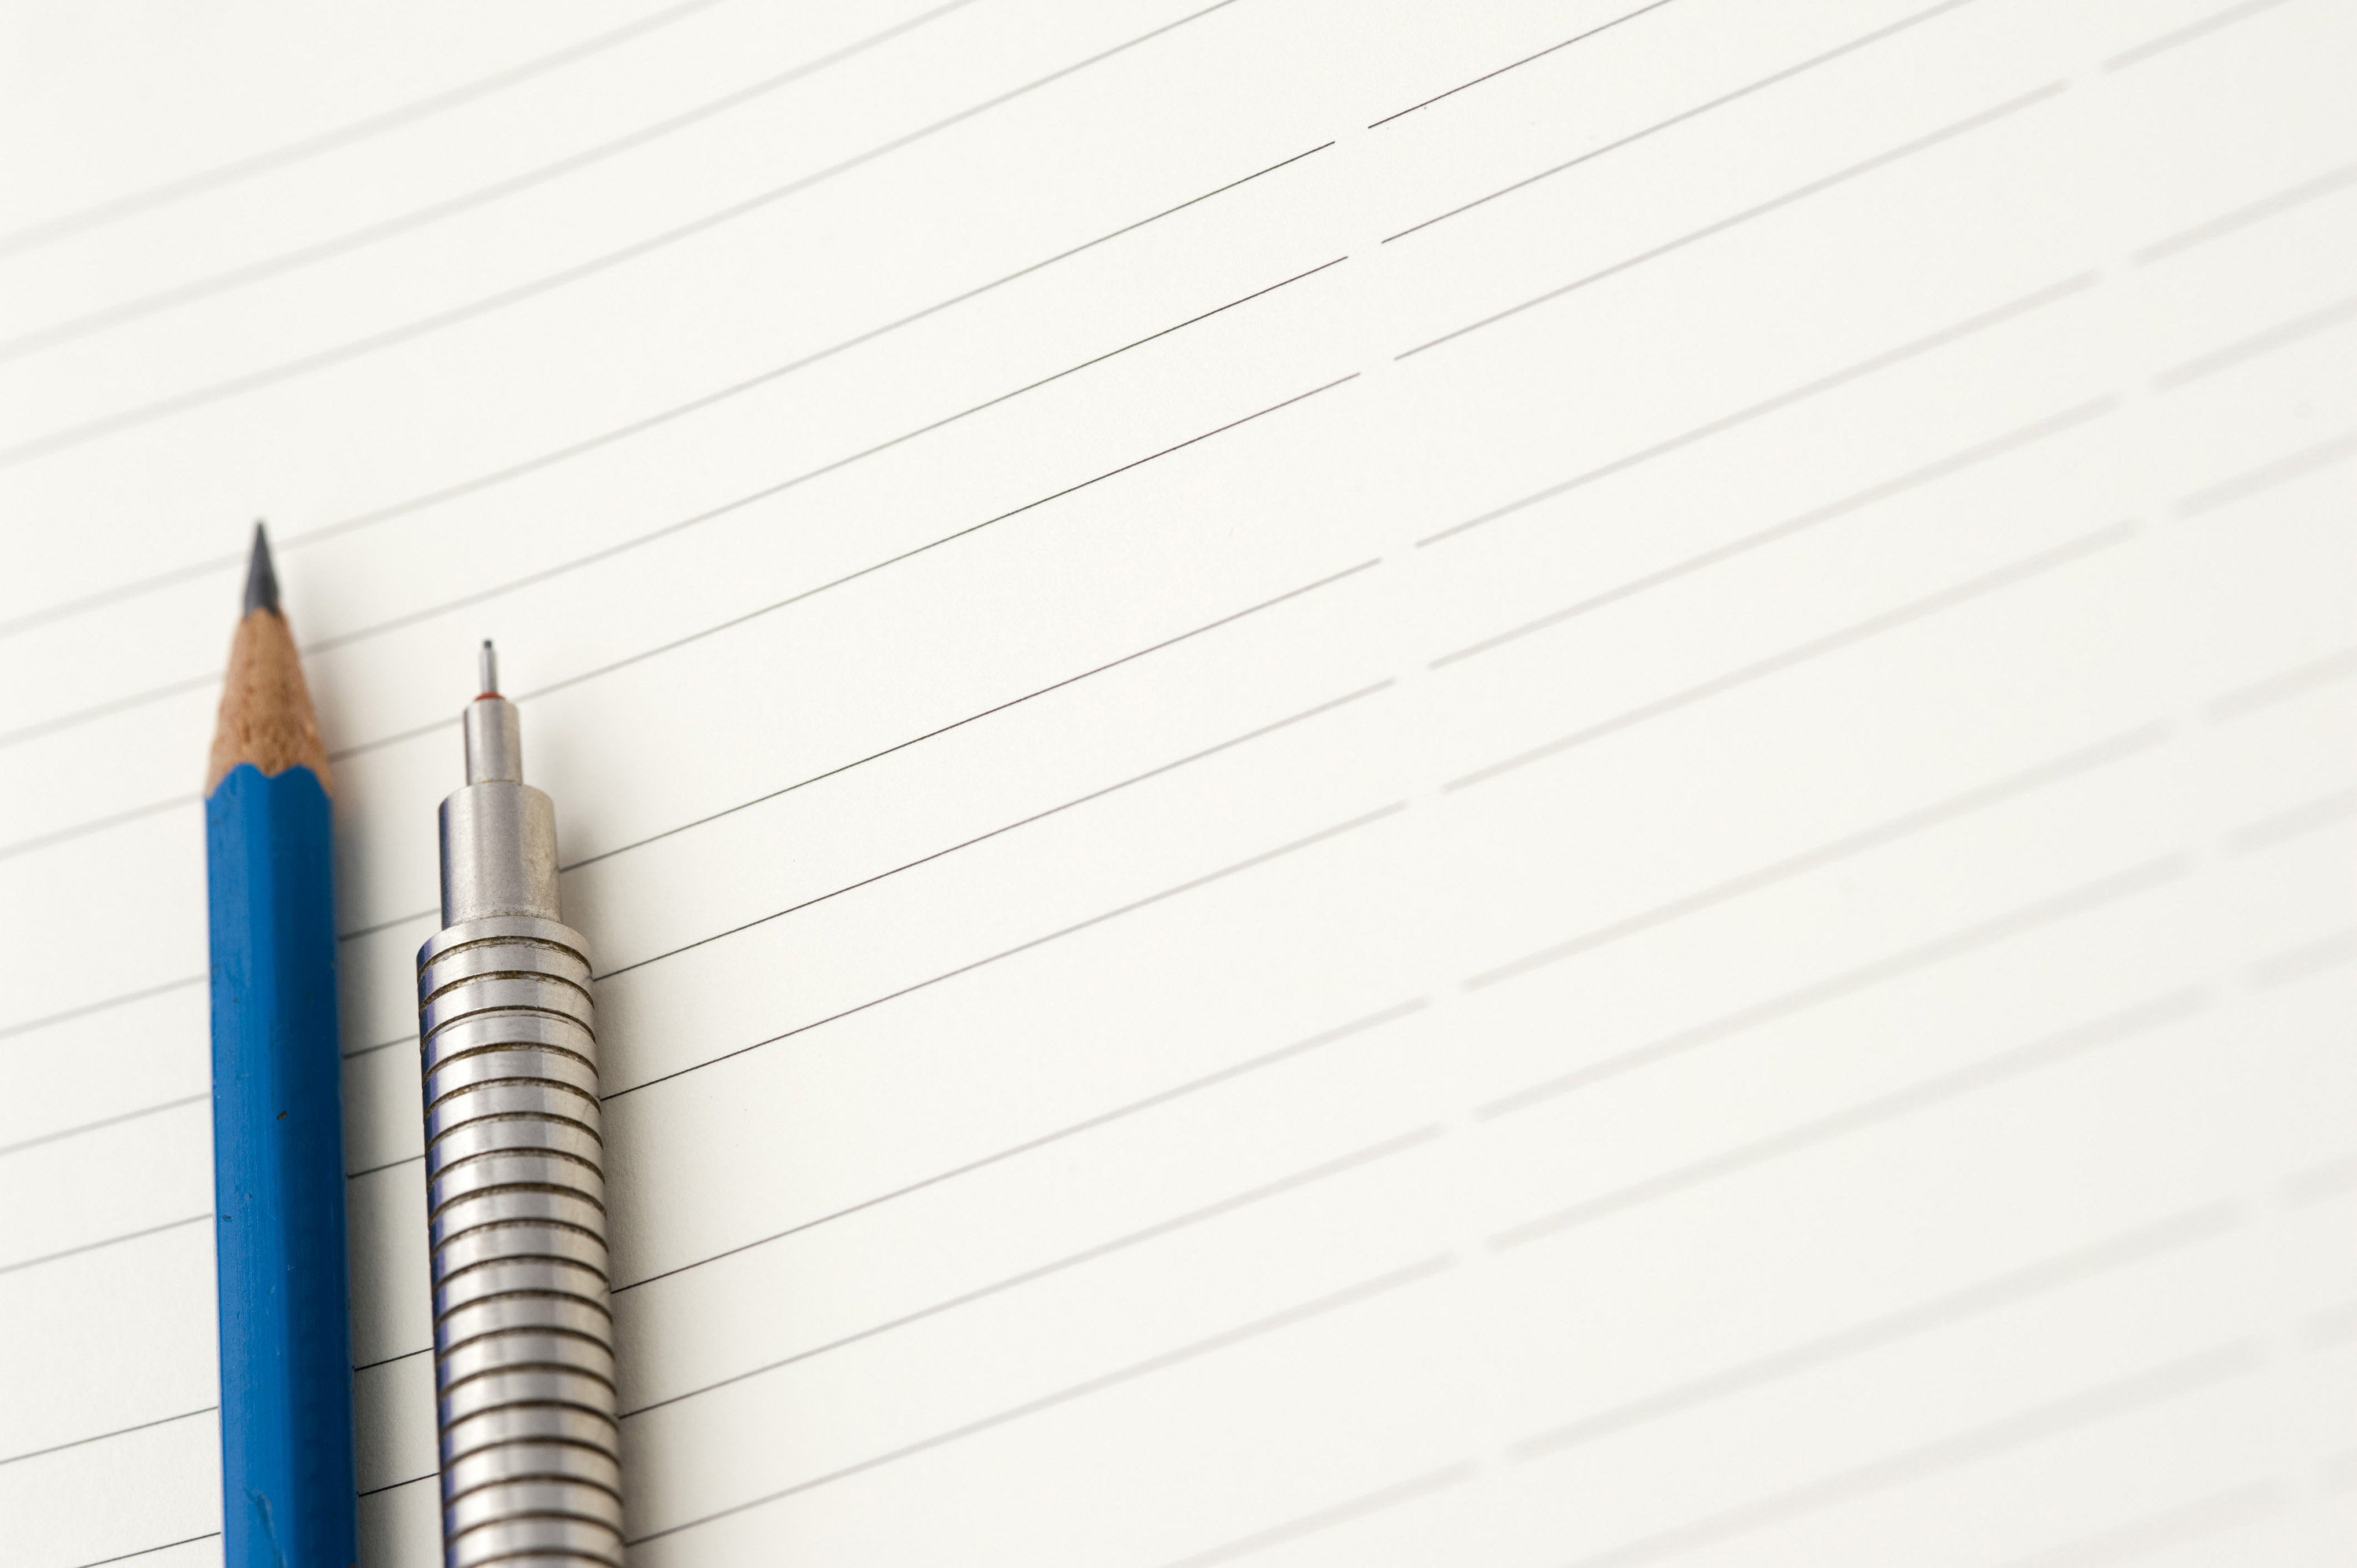 Free Images  Blank Lined Page